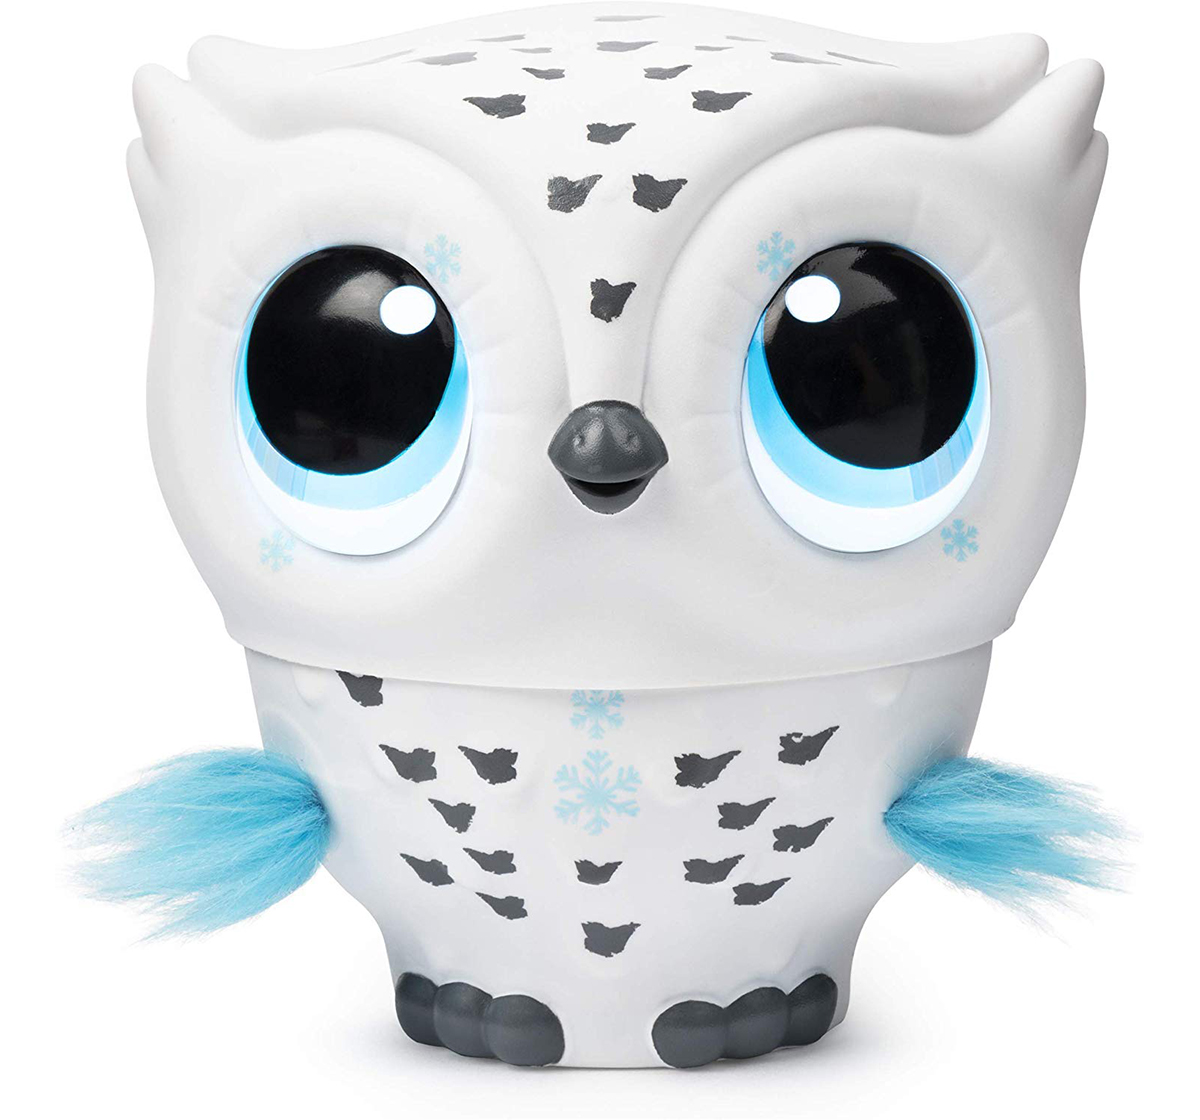 Owleez | Owleez, Flying Baby Owl Interactive Toy with Lights and Sounds  Collectible Dolls for Kids age 6Y+ (White)